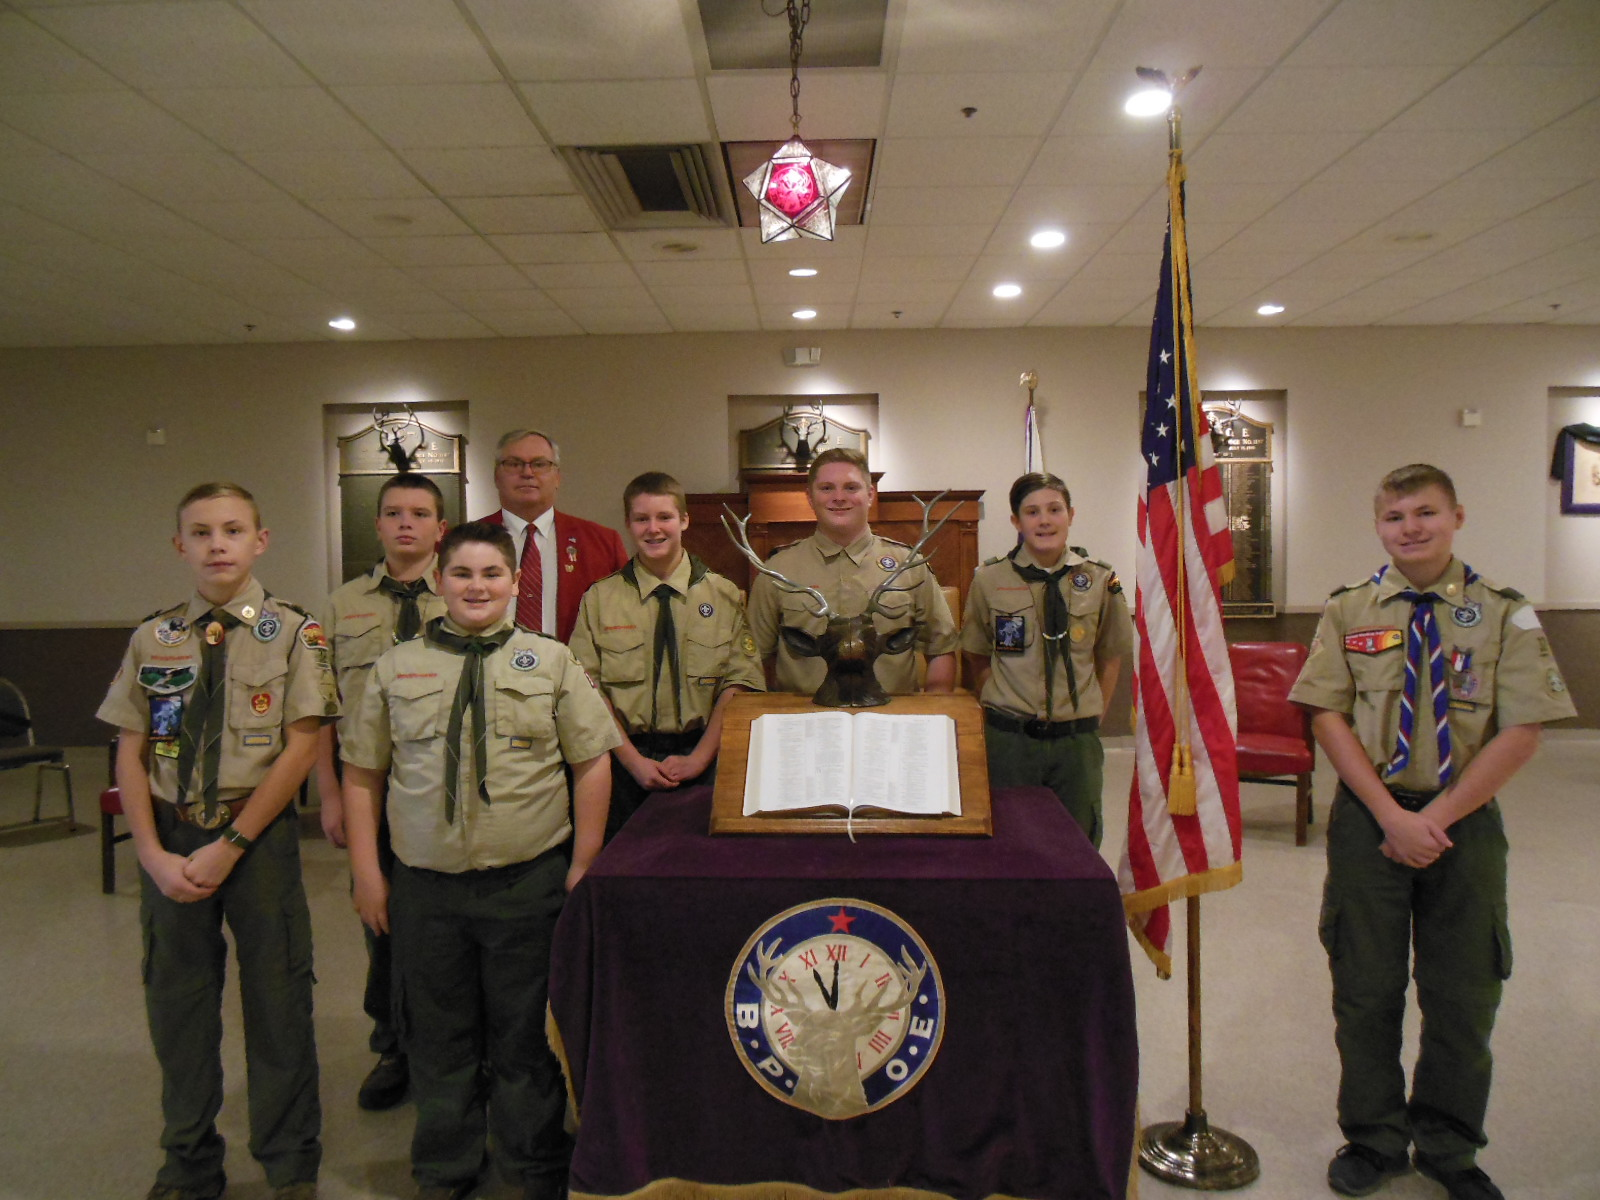 Pictured are Keith Collins, Lodge Veteran Committee Chairman along with members of Boy Scout Troop 32.